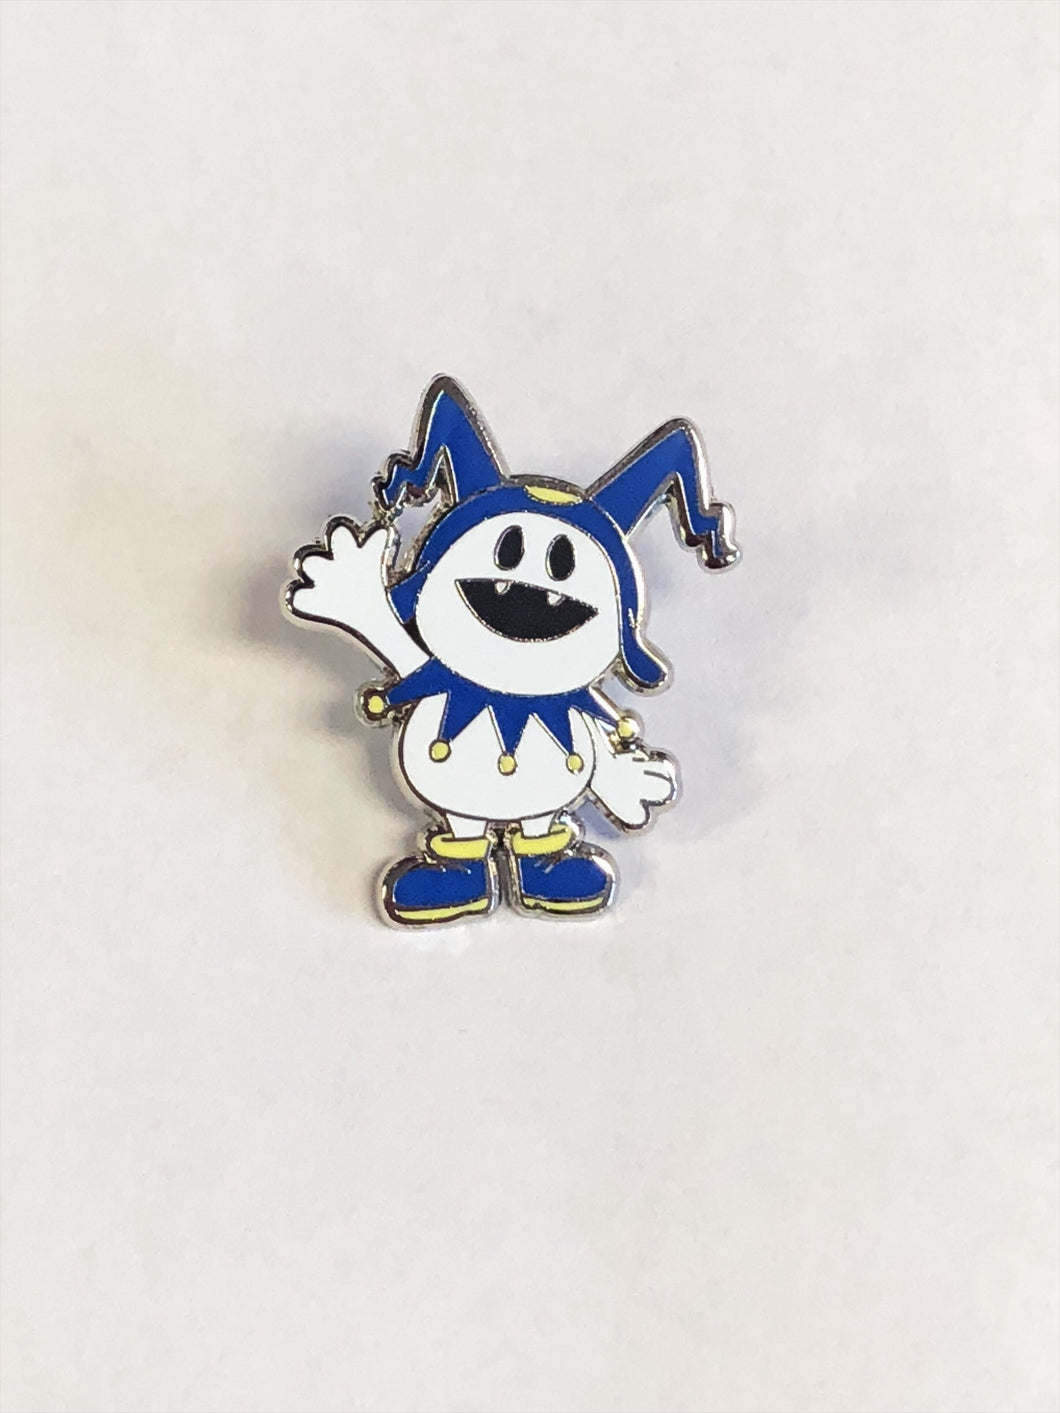 Jack Frost Pin